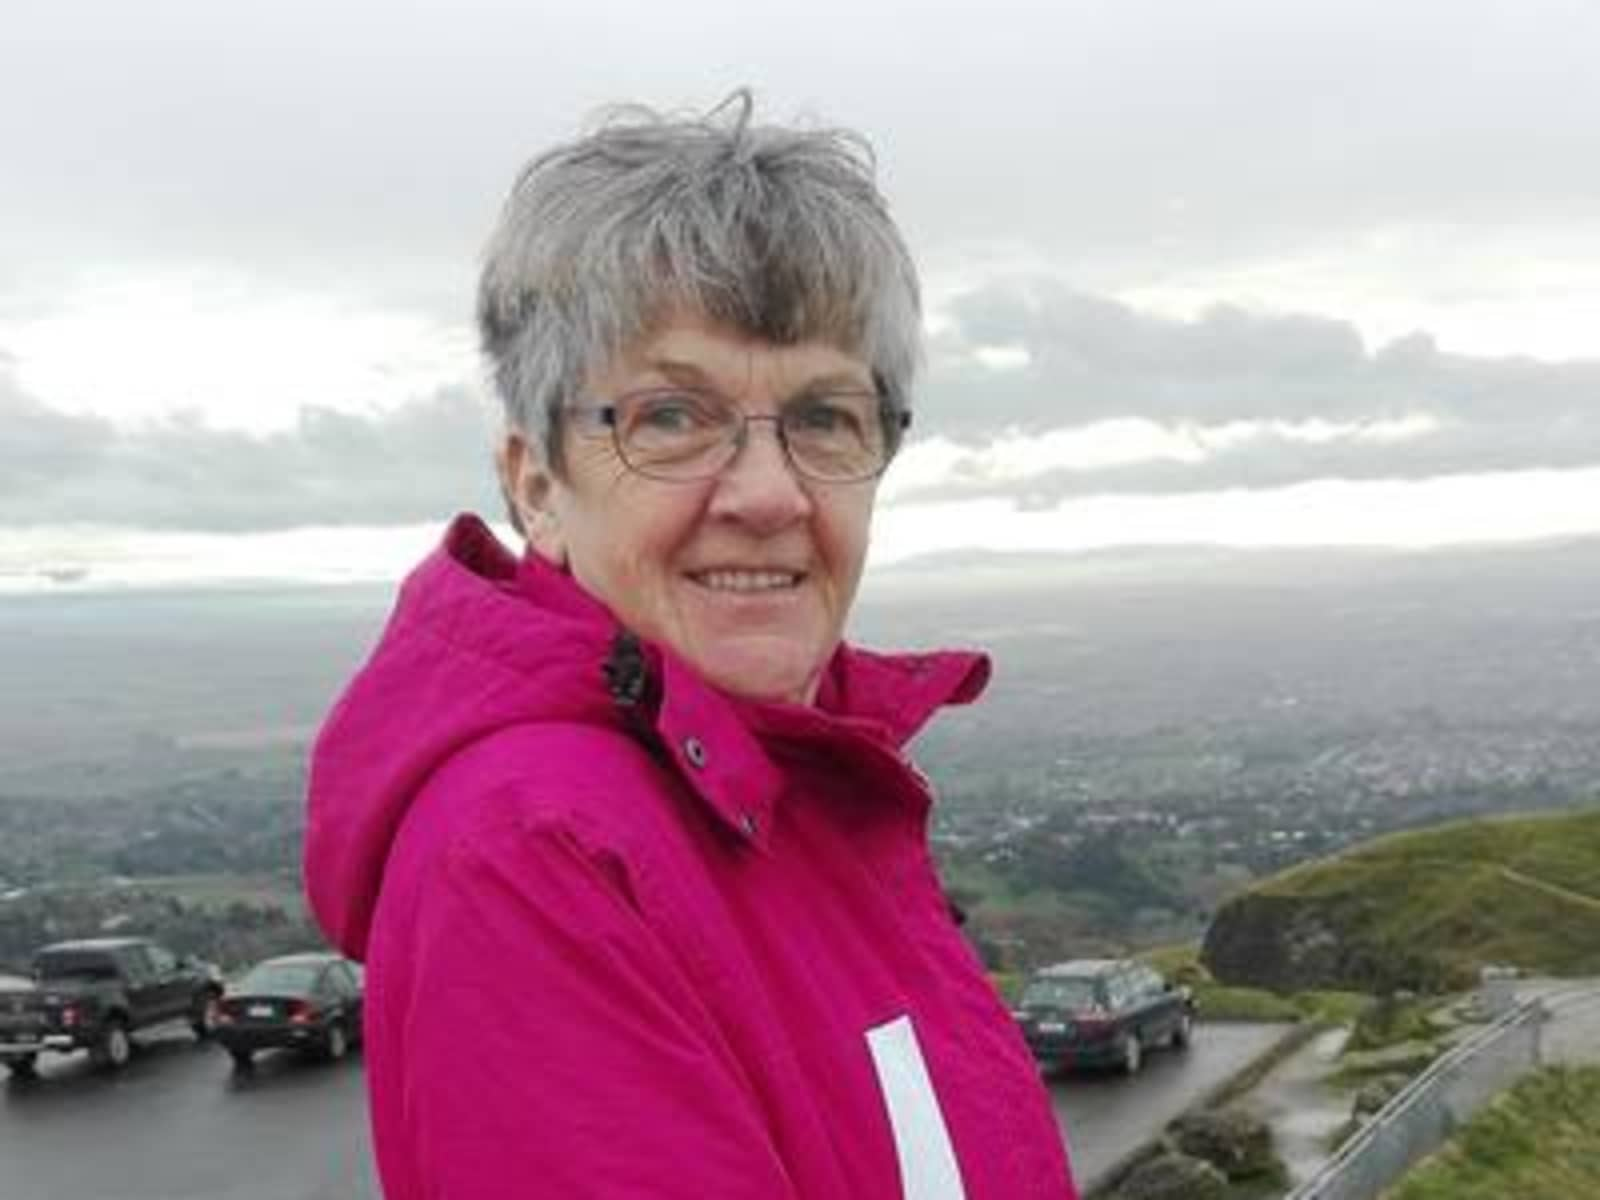 Lesley from Nelson, New Zealand